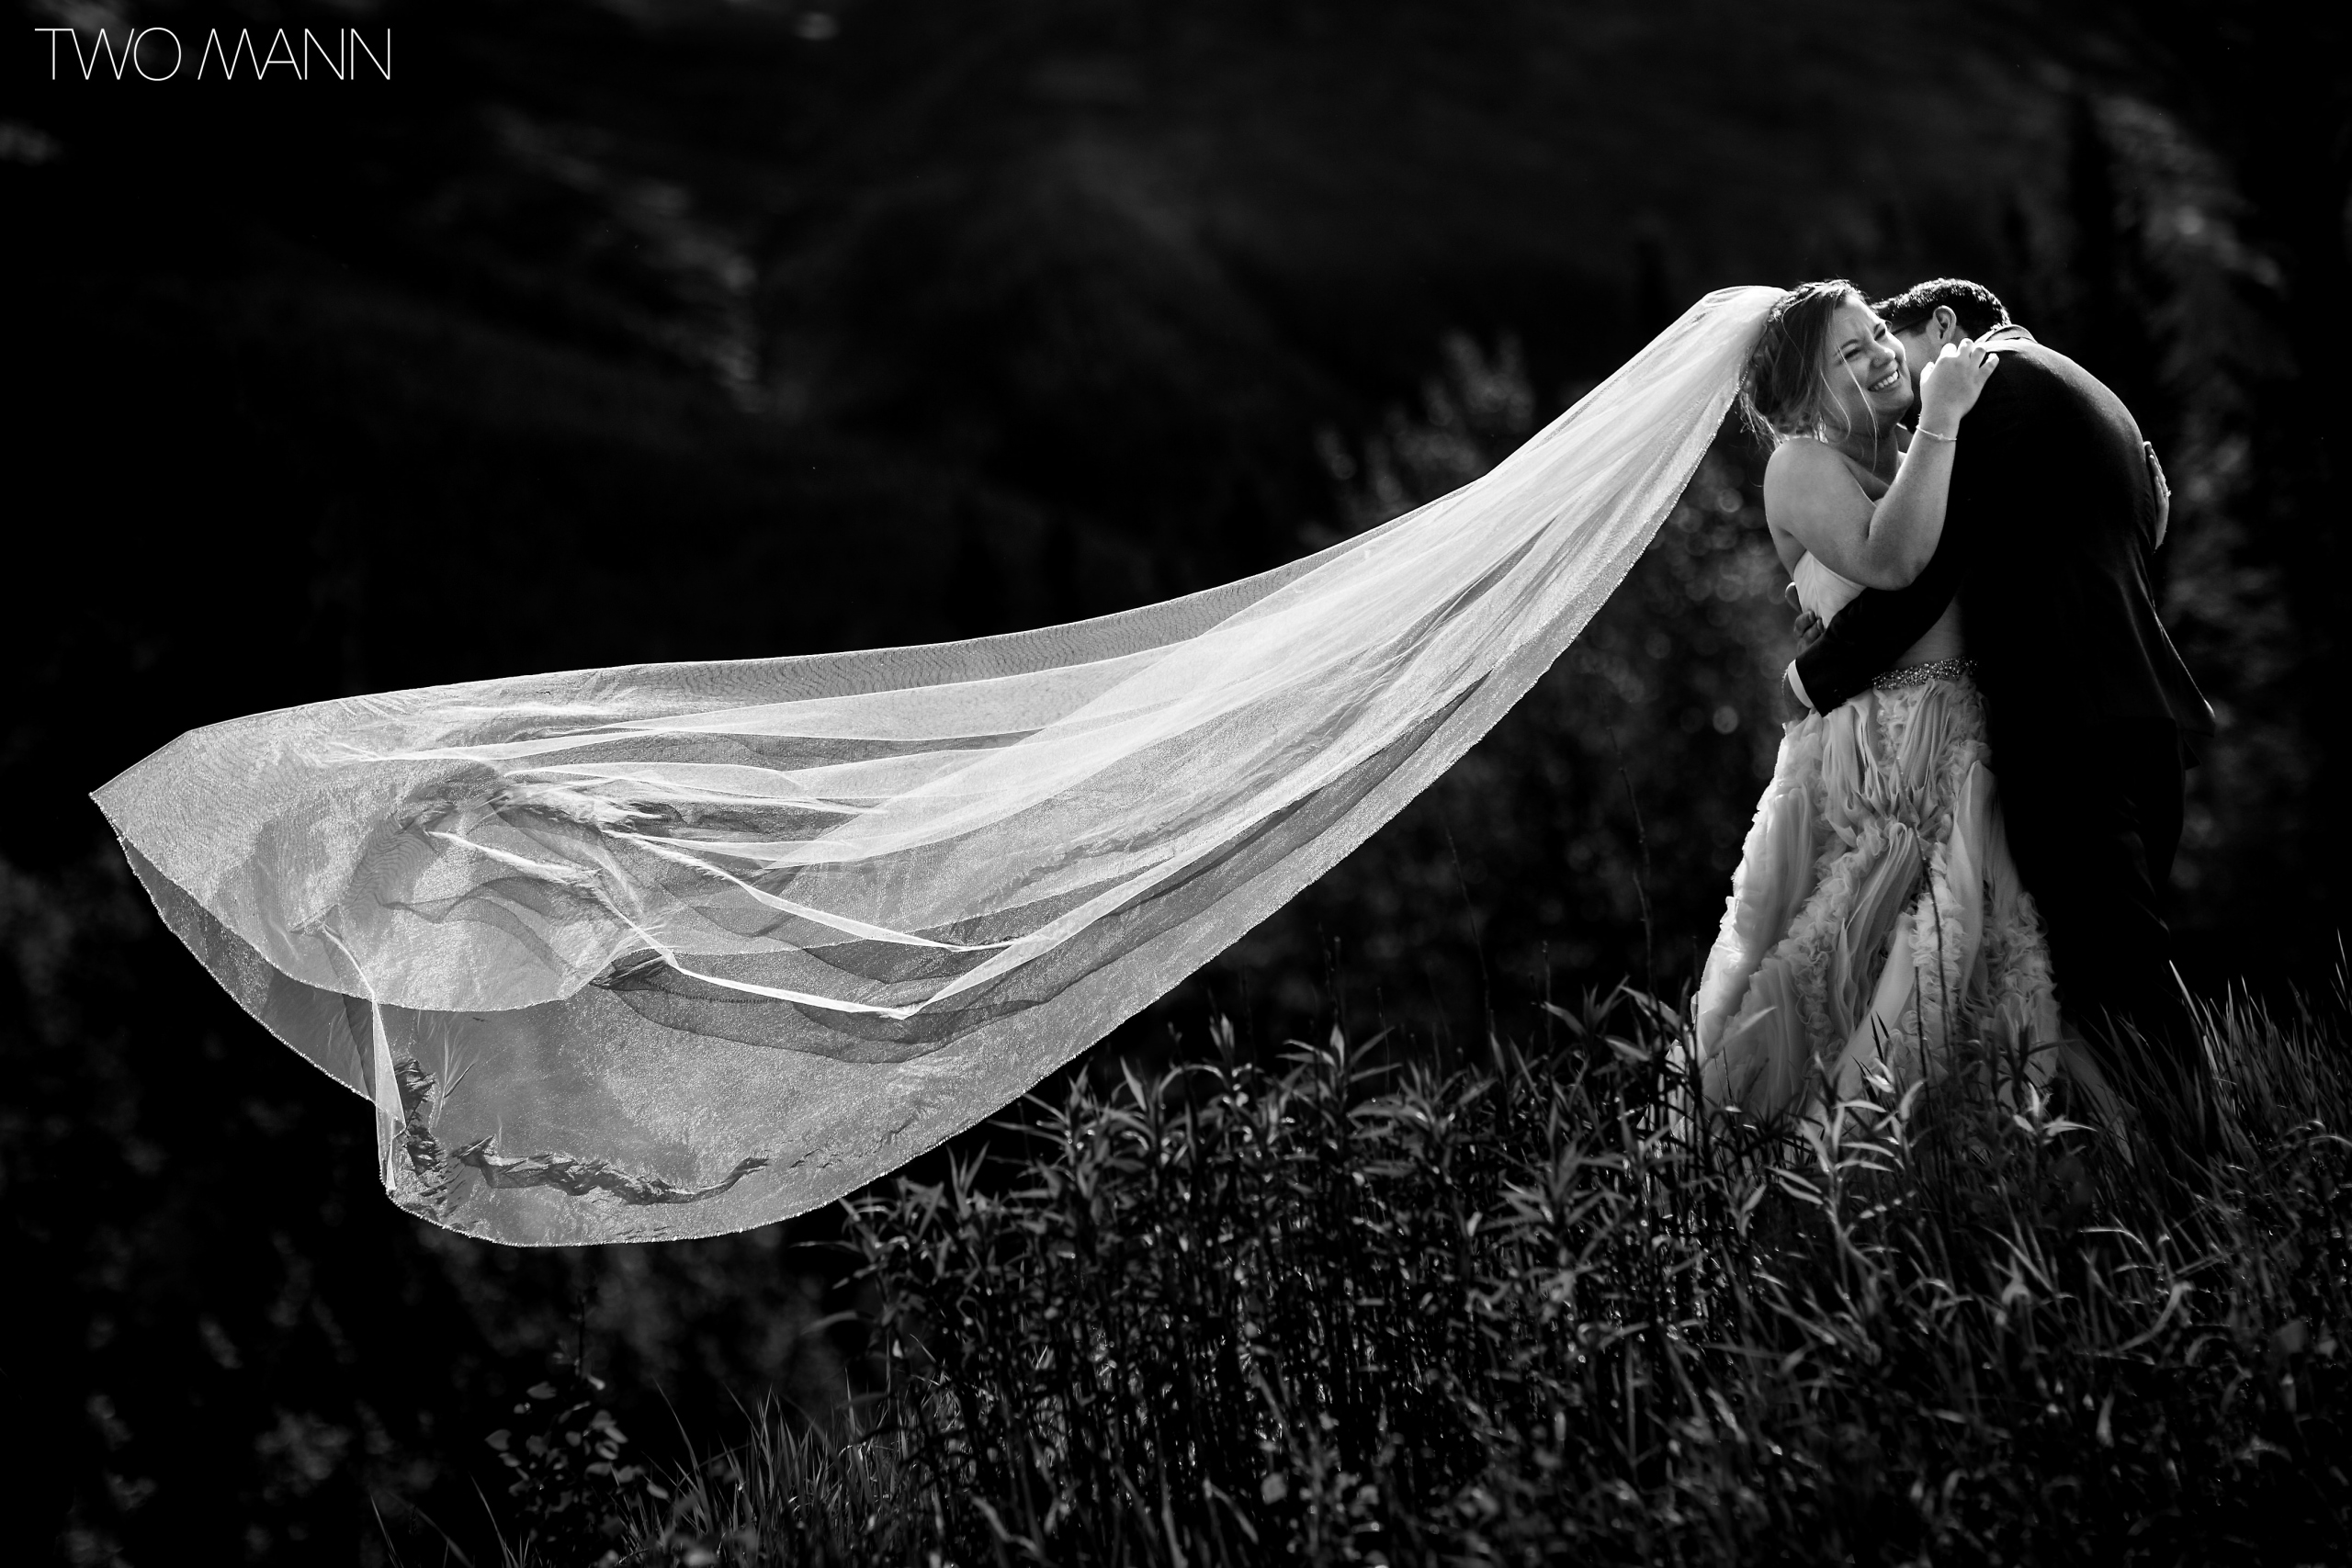 canmore-wedding-photography-two-mann-sabin-steph-17